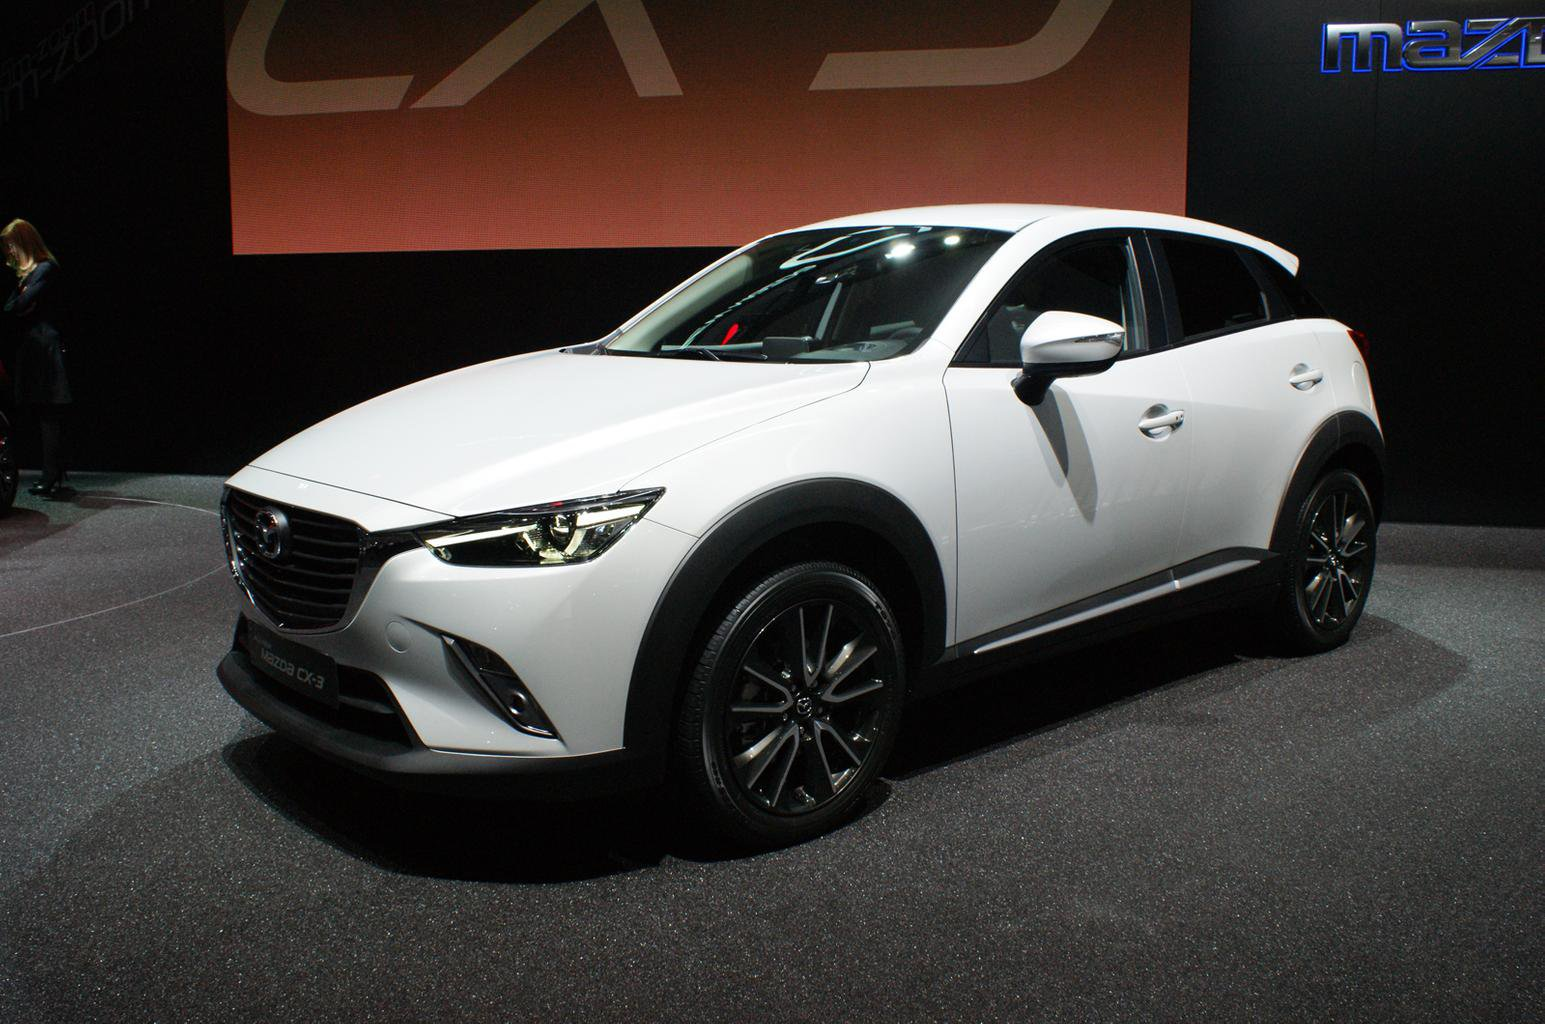 2015 Mazda CX-3 - full pricing, specs, engines and on-sale date